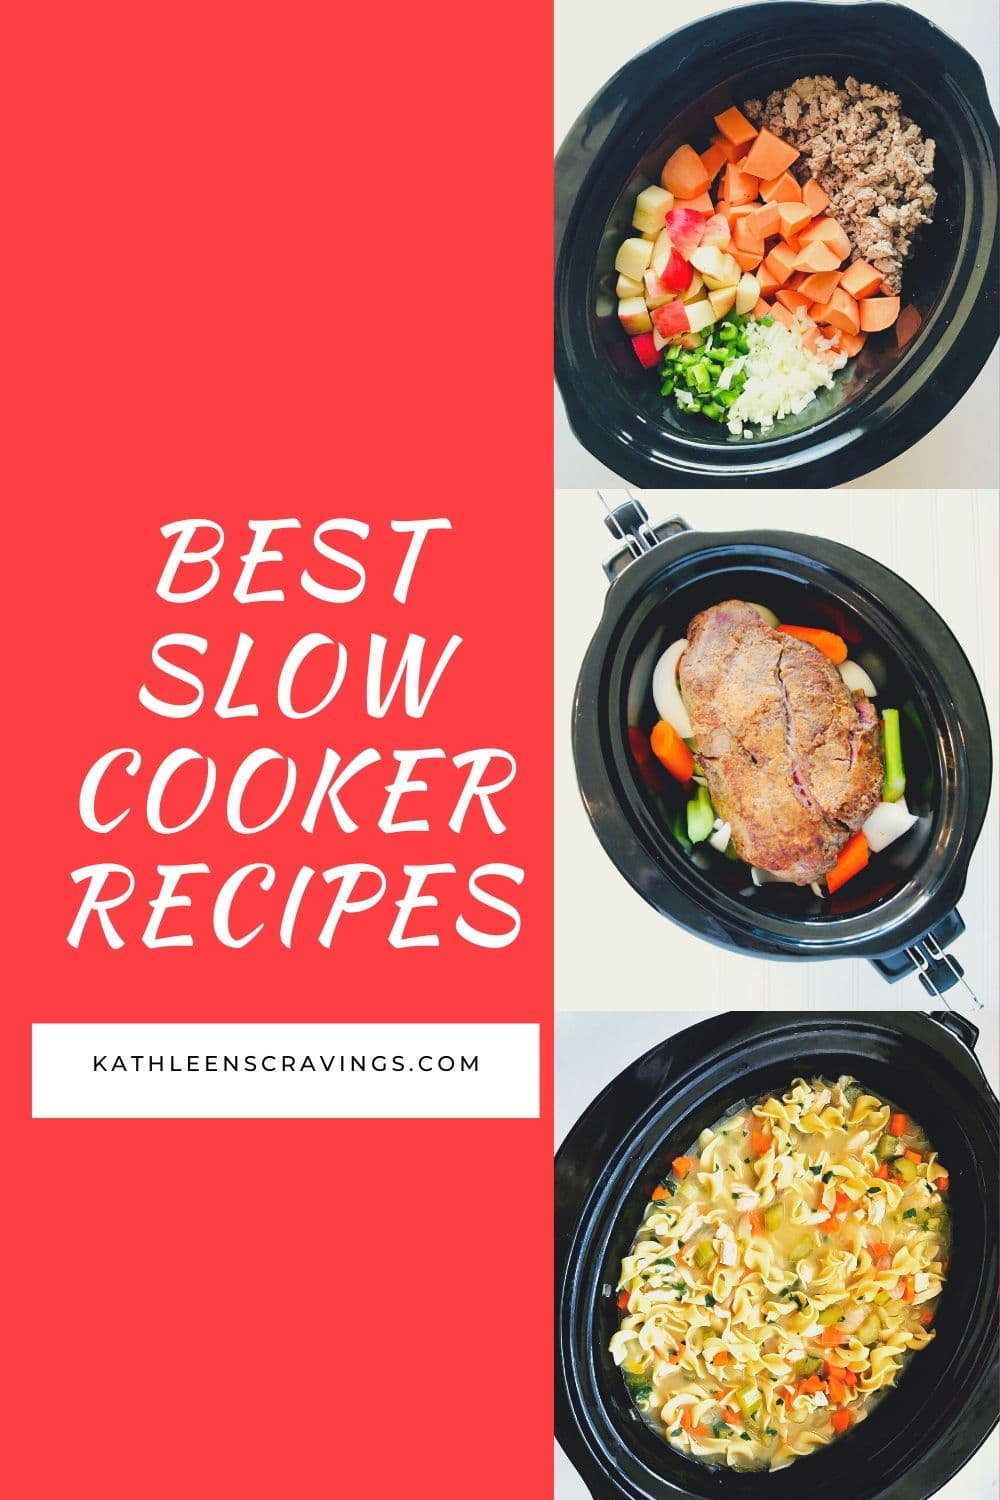 Best Slow Cooker Recipes!